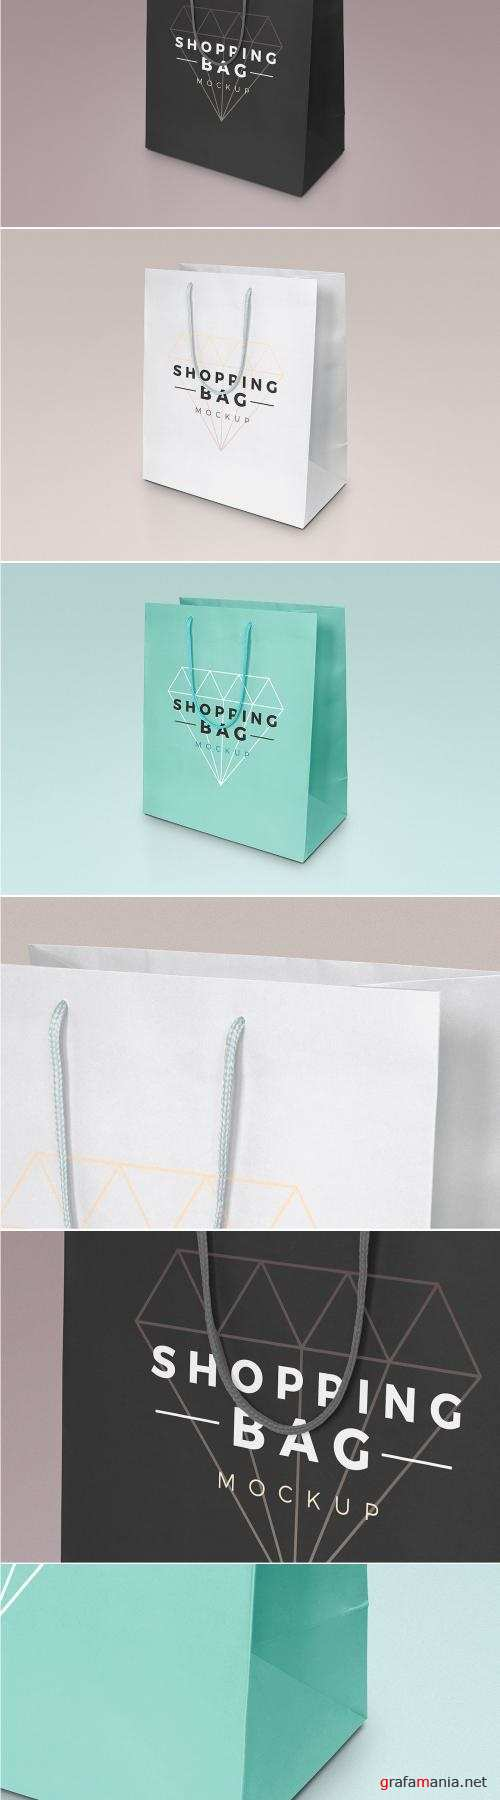 Shopping Bag Mockup - 2350263